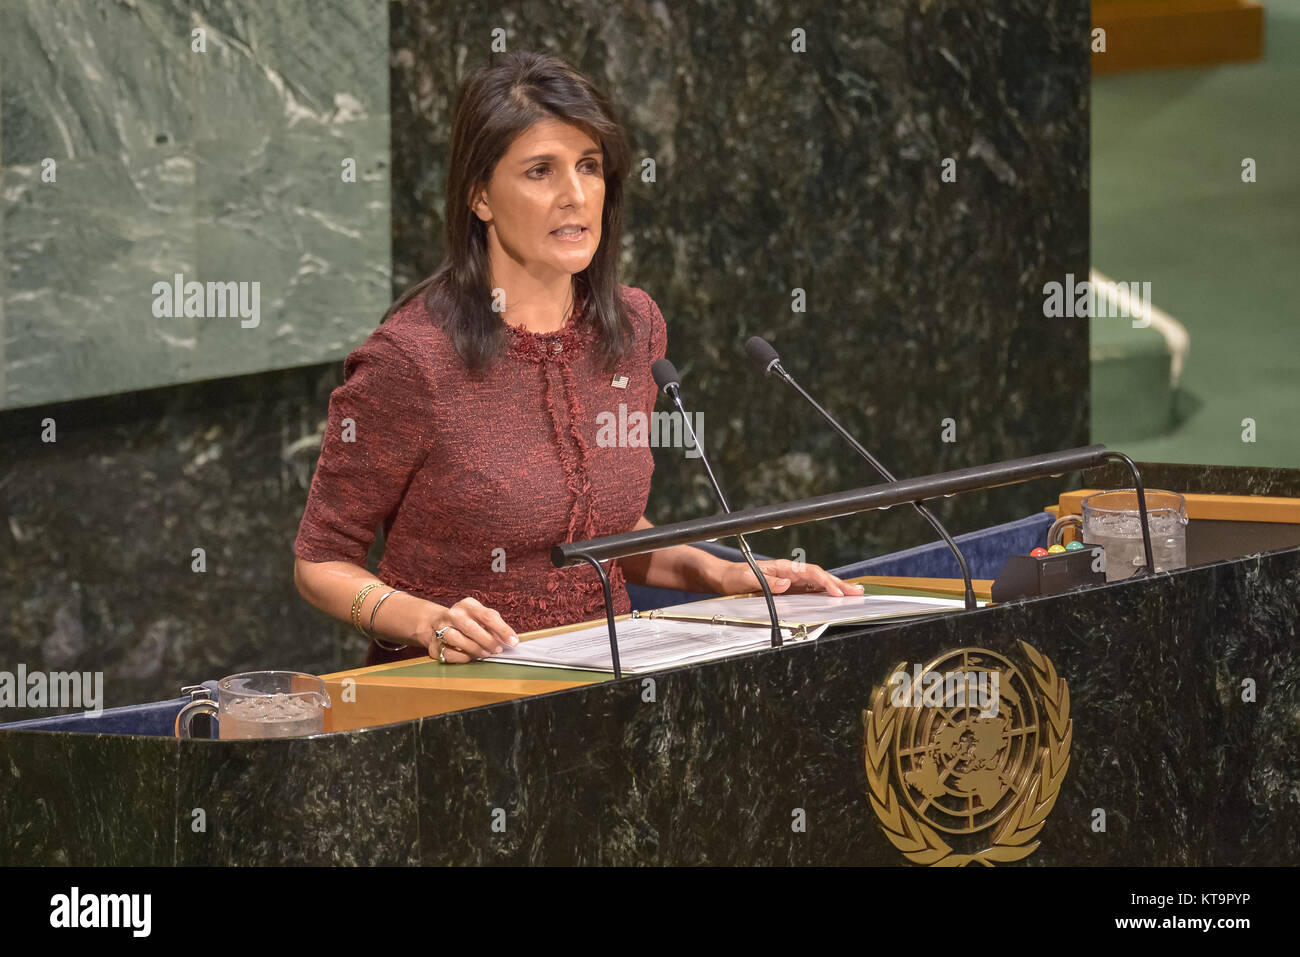 New York, United States. 21st Dec, 2017. US Ambassador to the UN Nikki Haley is seen speaking before a vote by the - Stock Image